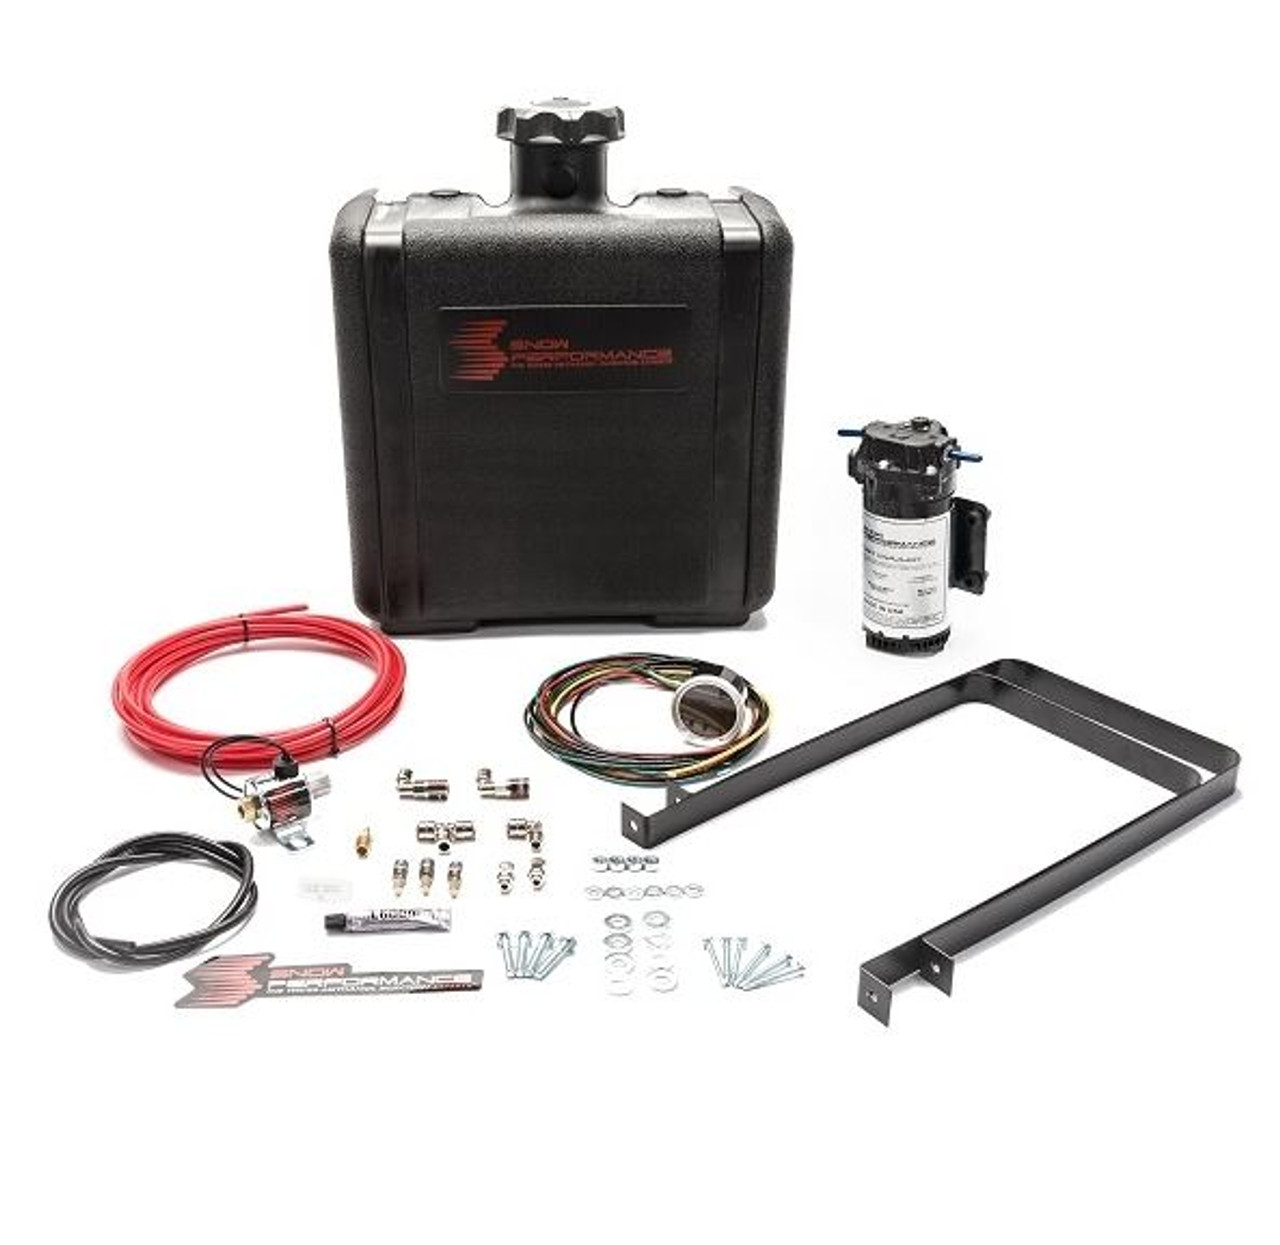 Snow Performance Diesel Stage 2 Boost Cooler Water-Methanol Injection Kit for Dodge Cummins 5.9L (SNO-400)